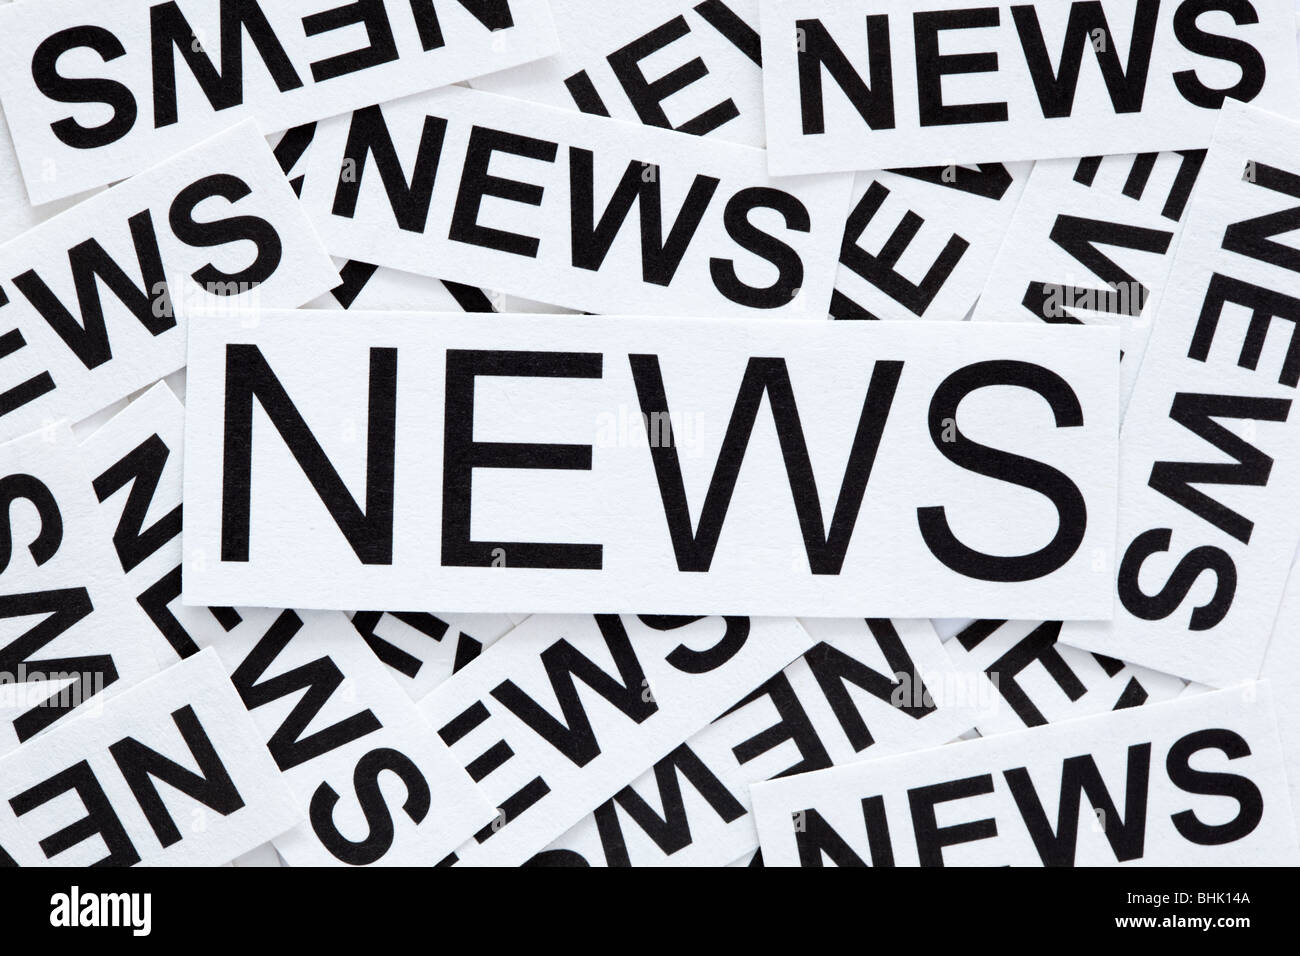 News concept.Many paper labels with word 'NEWS' - Stock Image